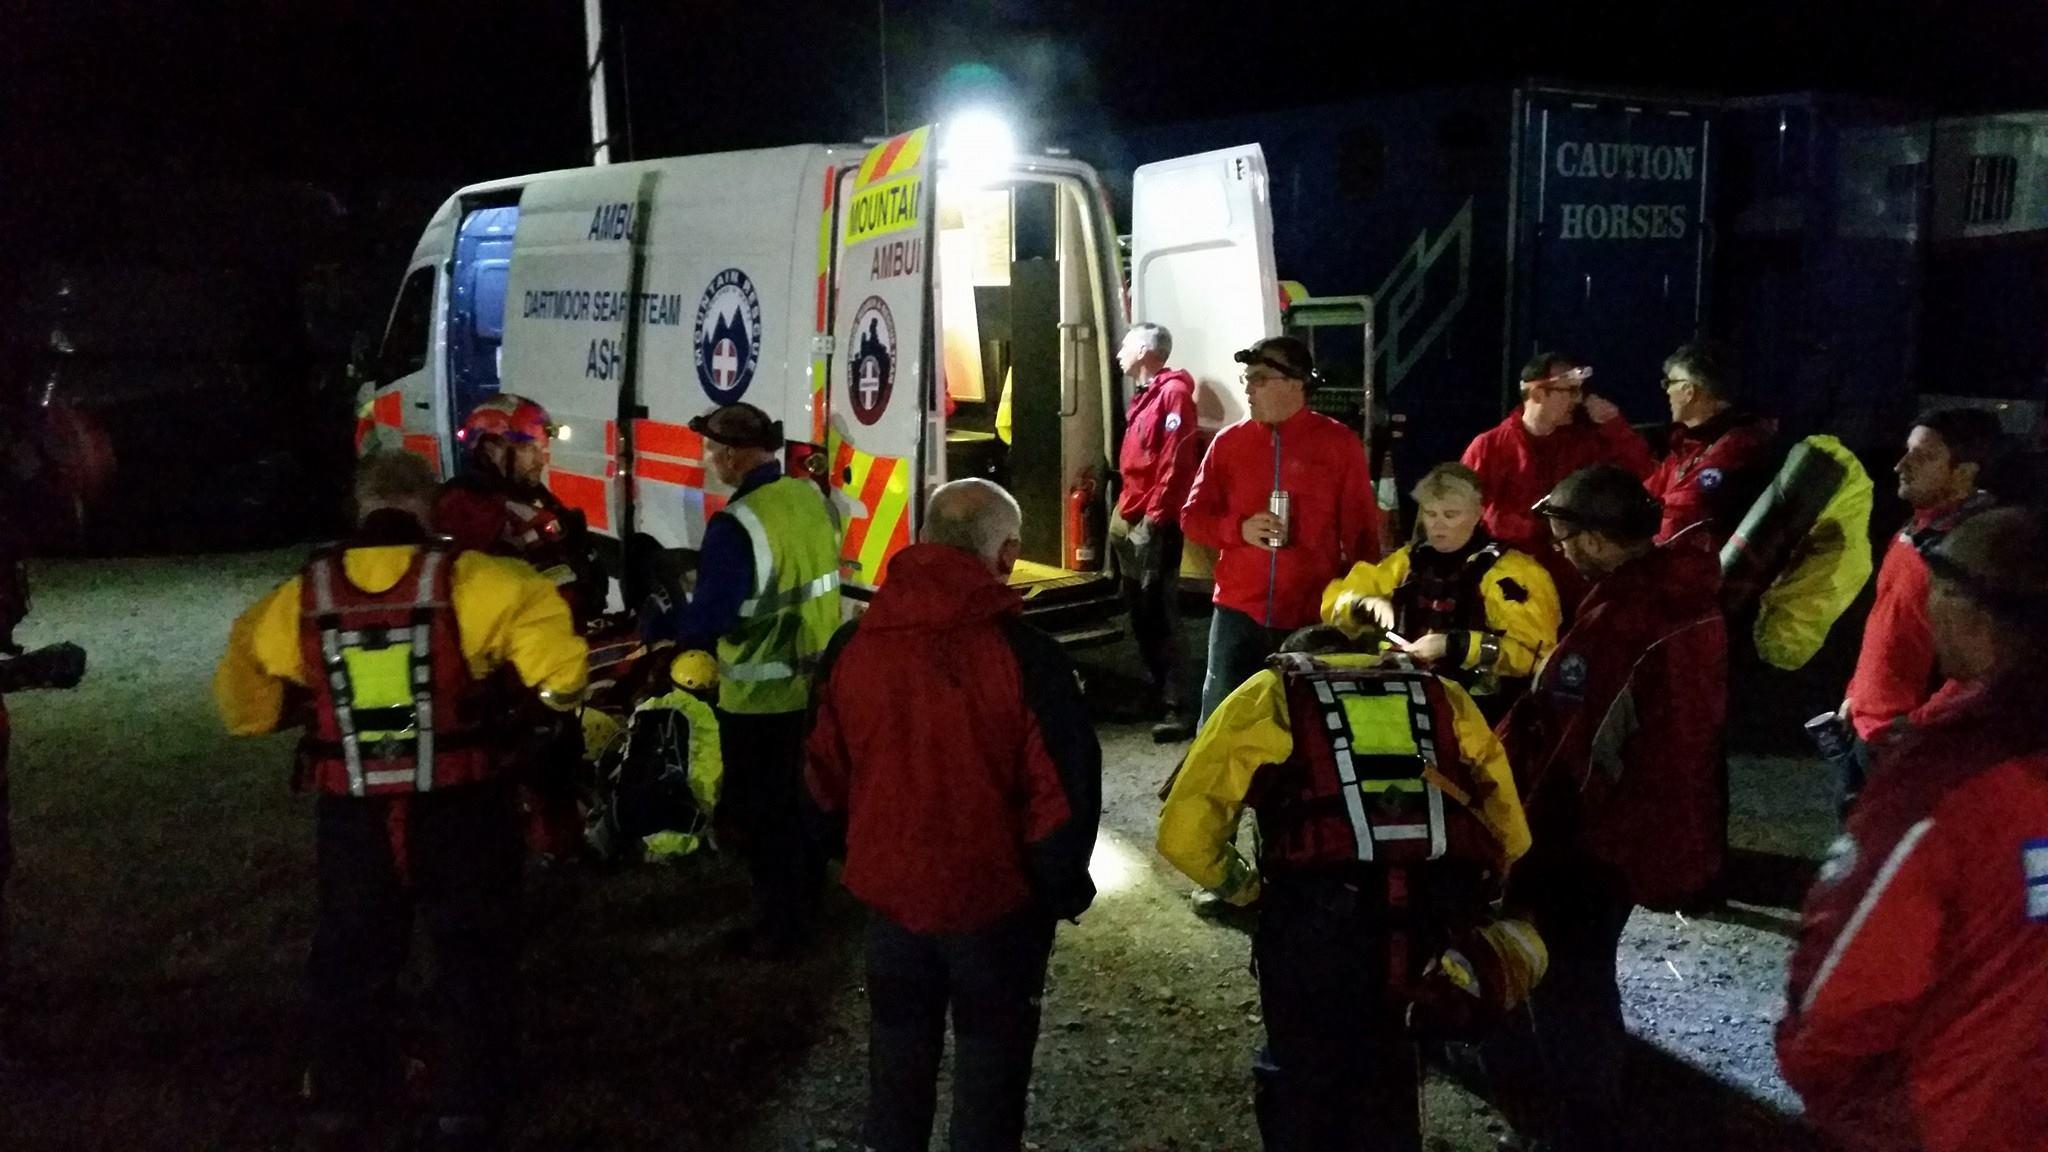 Dartmoor Search and Rescue Ashburton on site at a callout near Exeter in Devon